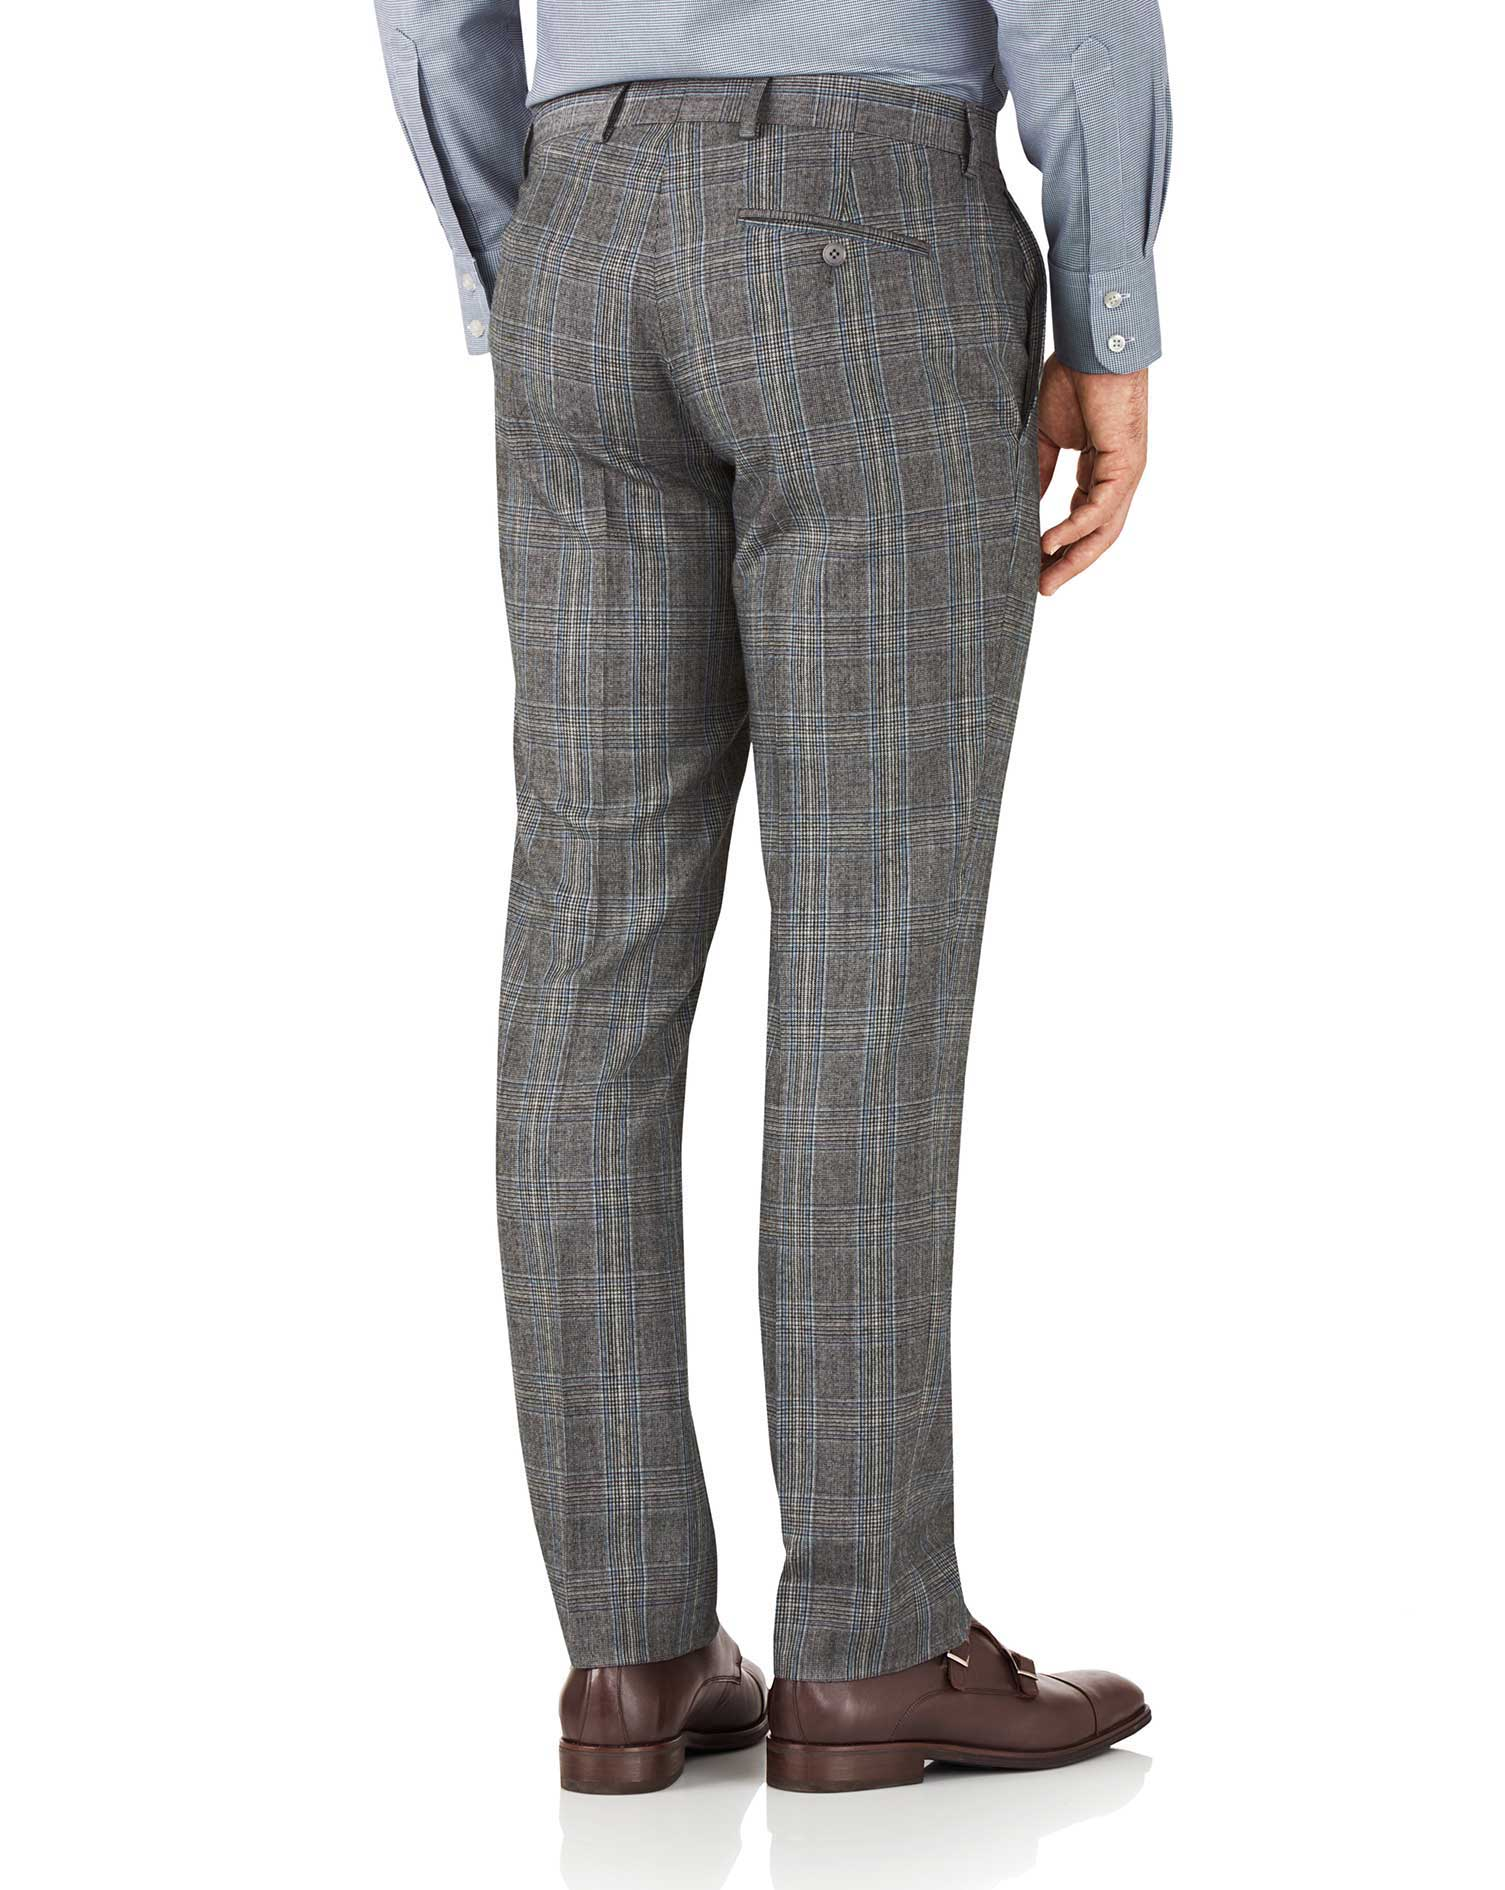 Silver Prince of Wales slim fit flannel business suit trousers